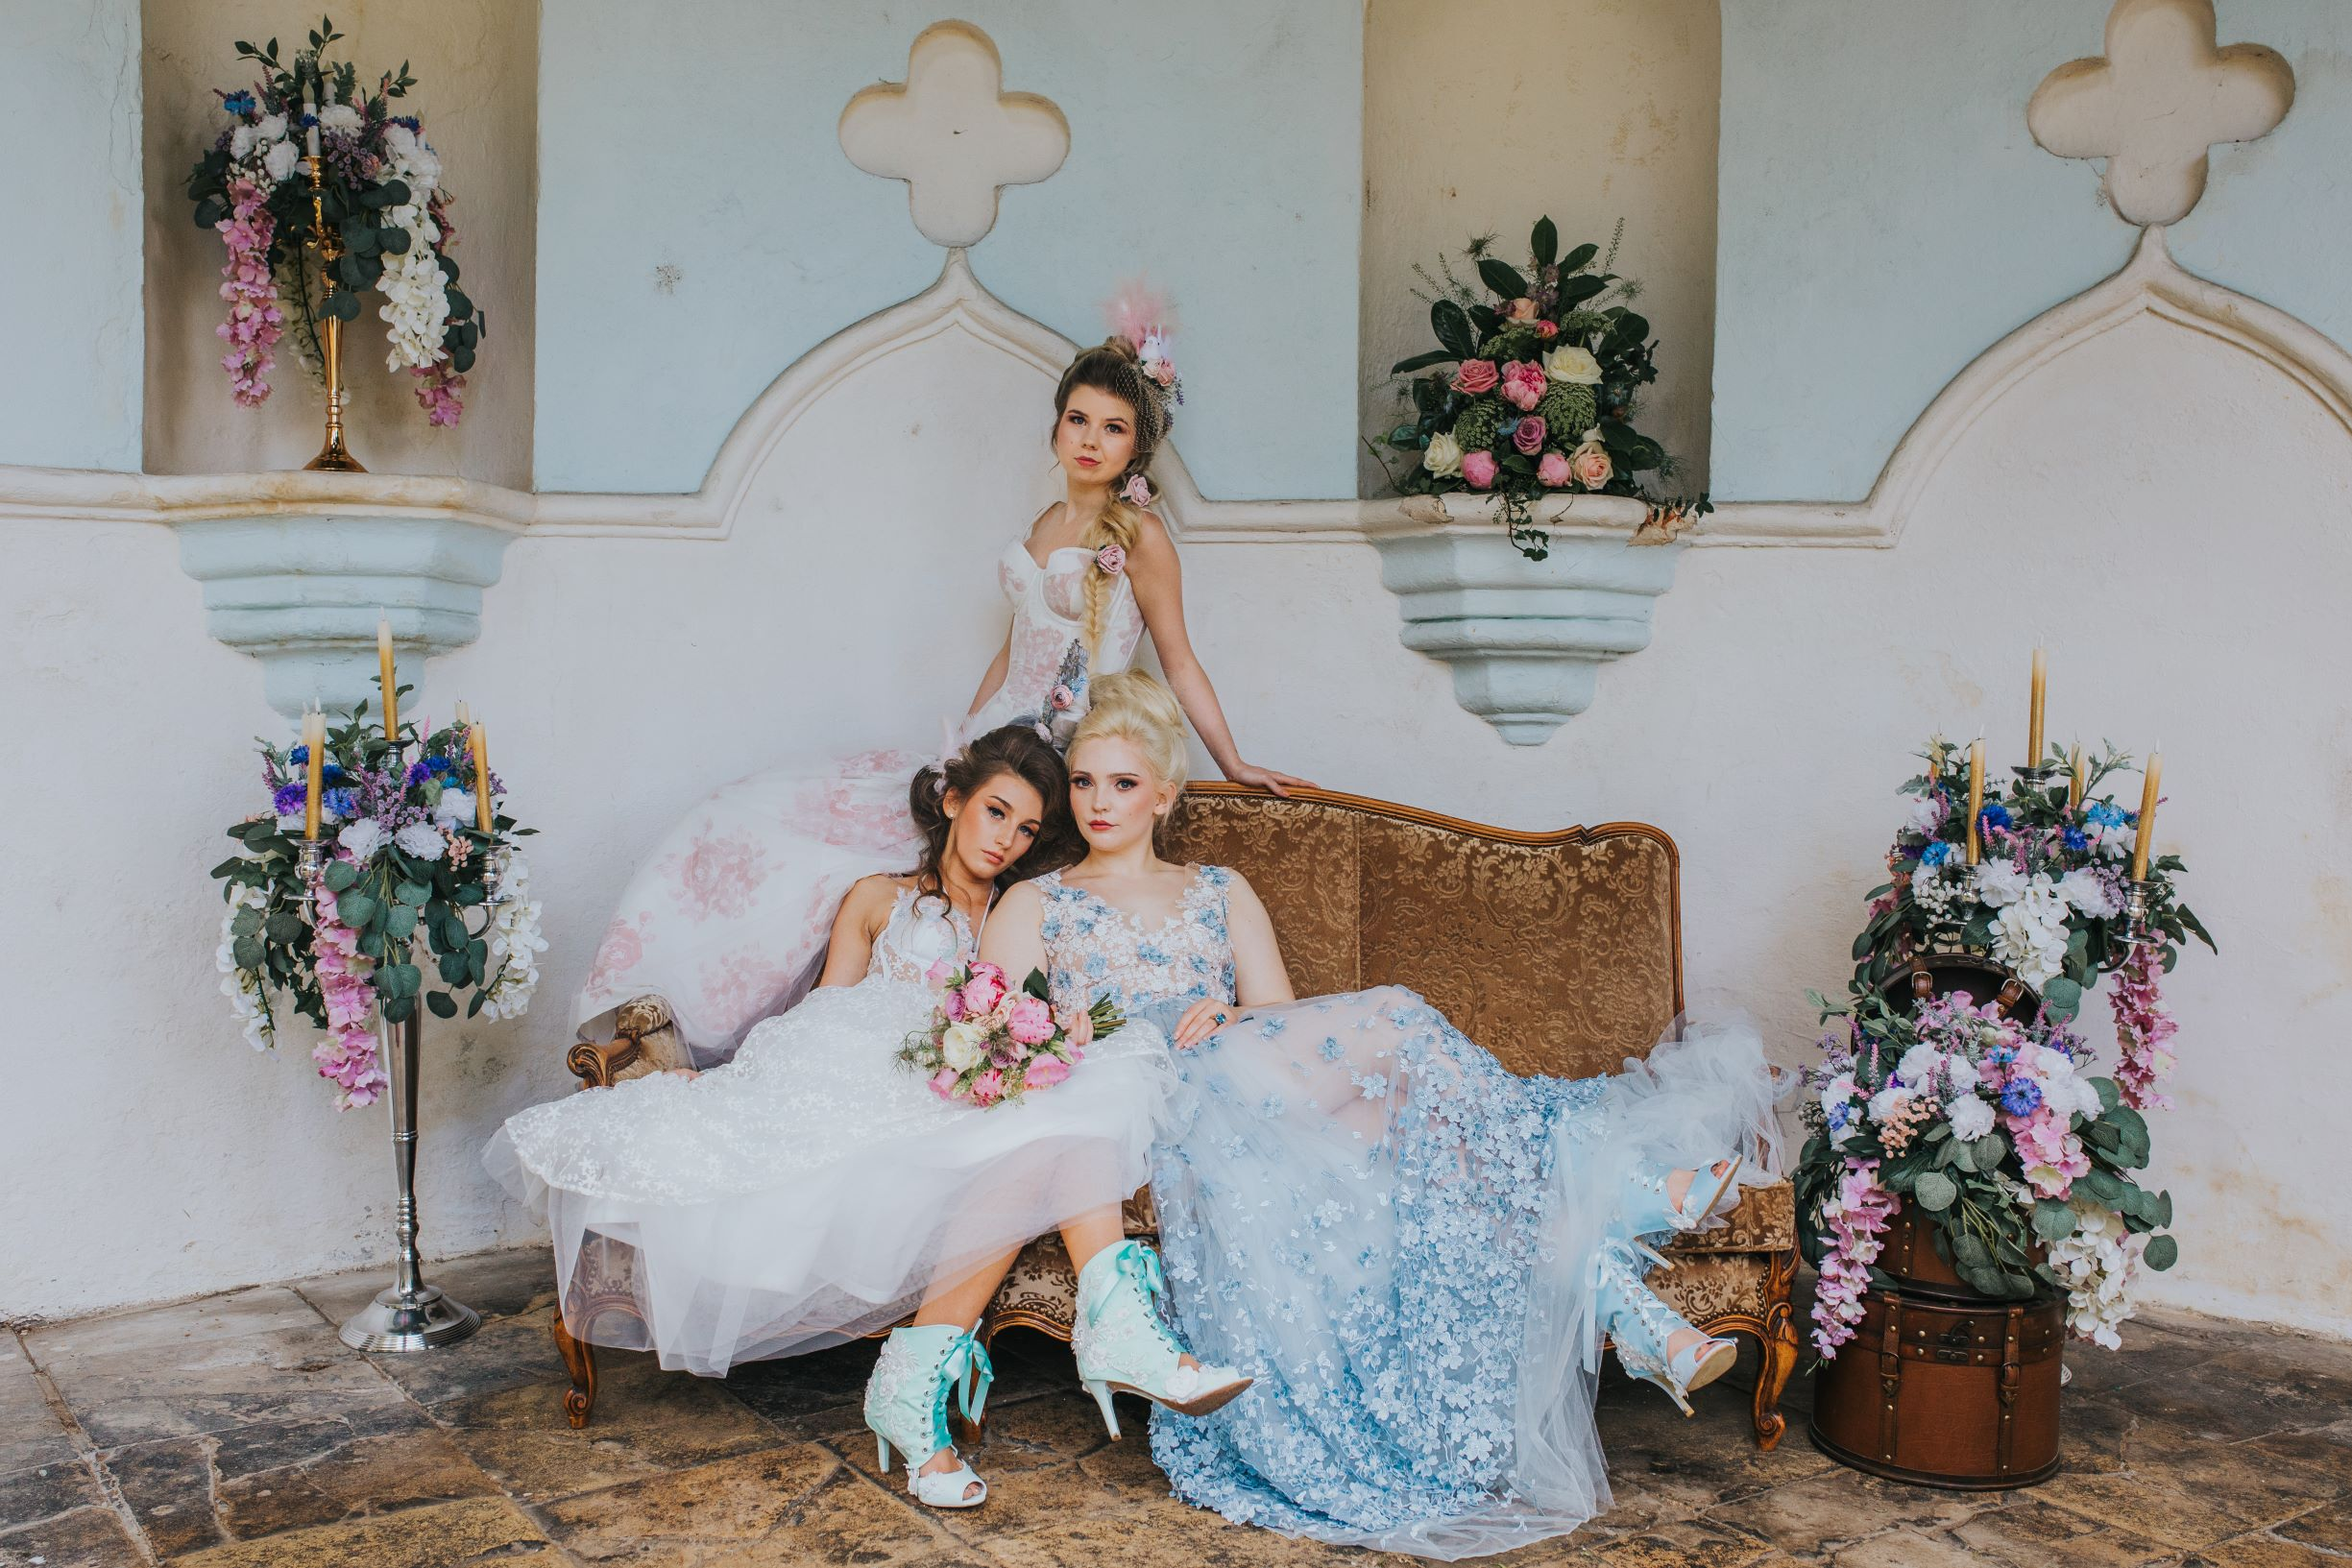 Whimsical wedding- alternative bridalwear- Laura Beresford Photography- unconventional wedding- alternative wedding- unique bridalwear- colourful wedding dresses- unique wedding shoes